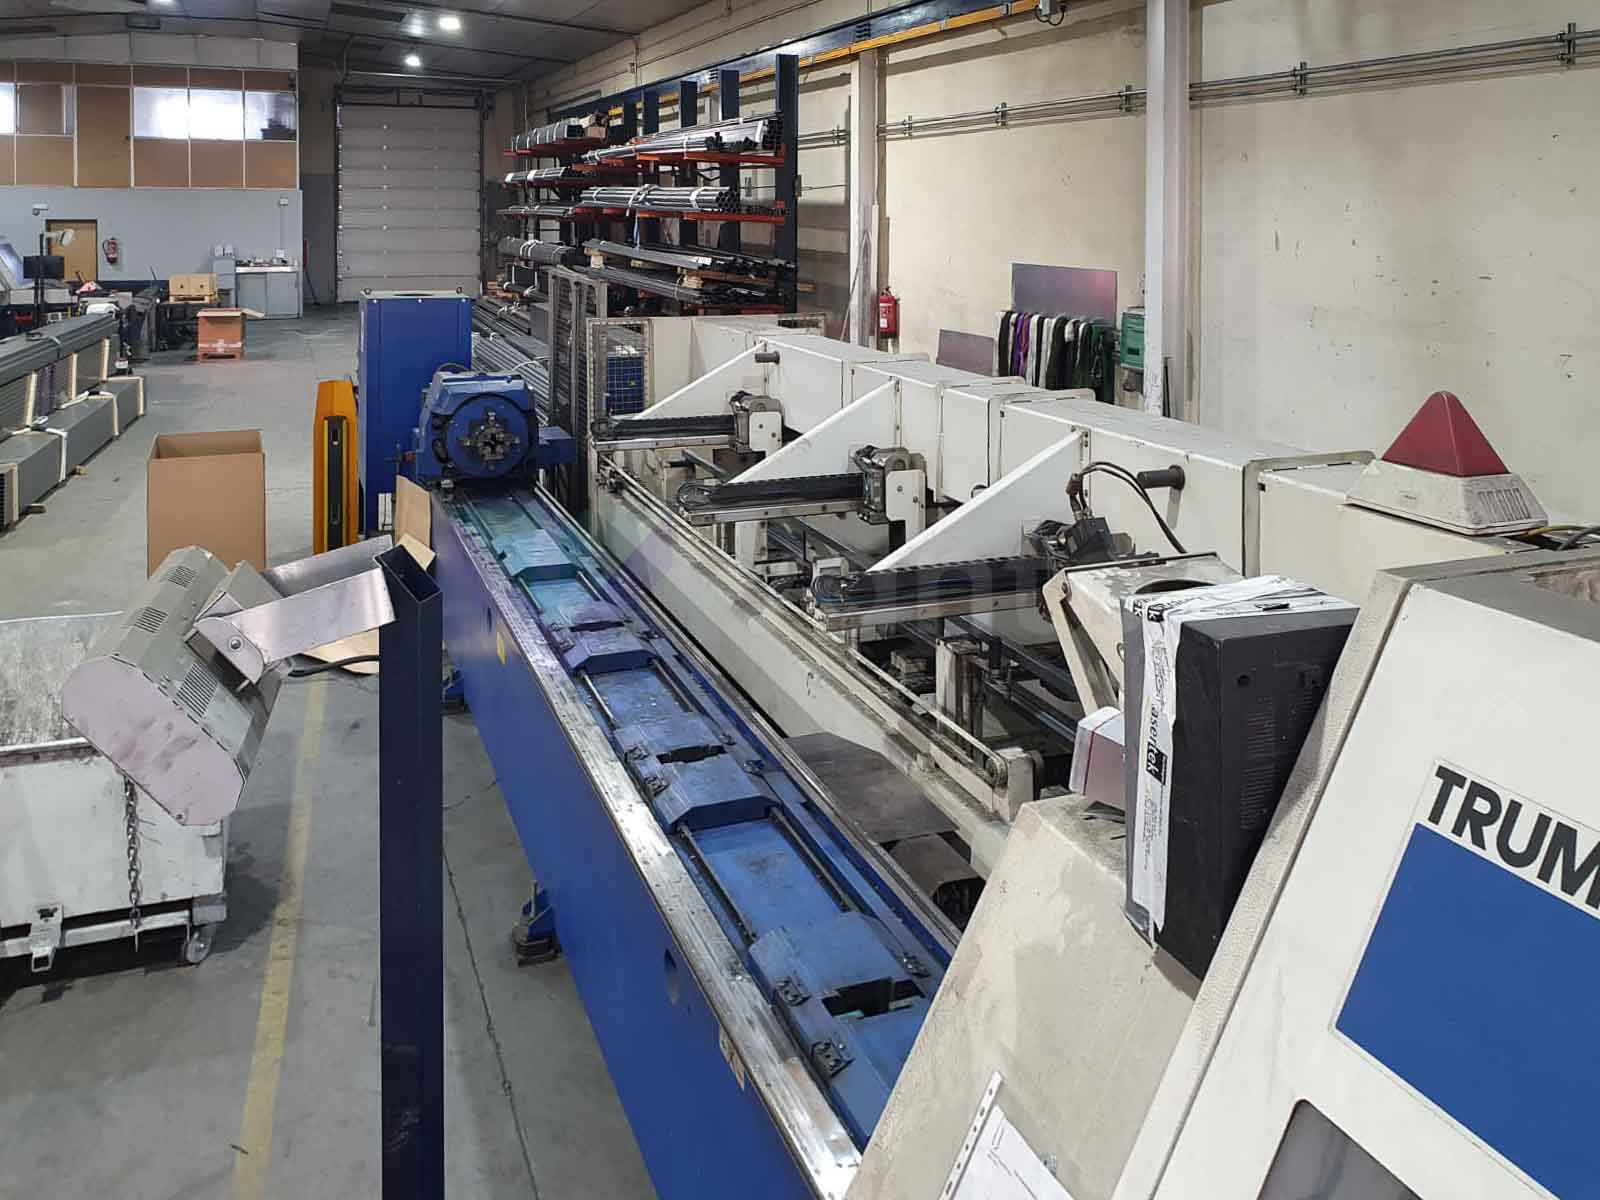 TRUMPF TUBEMATIC 5000 Laser pipe cutting machine (2005) id10499